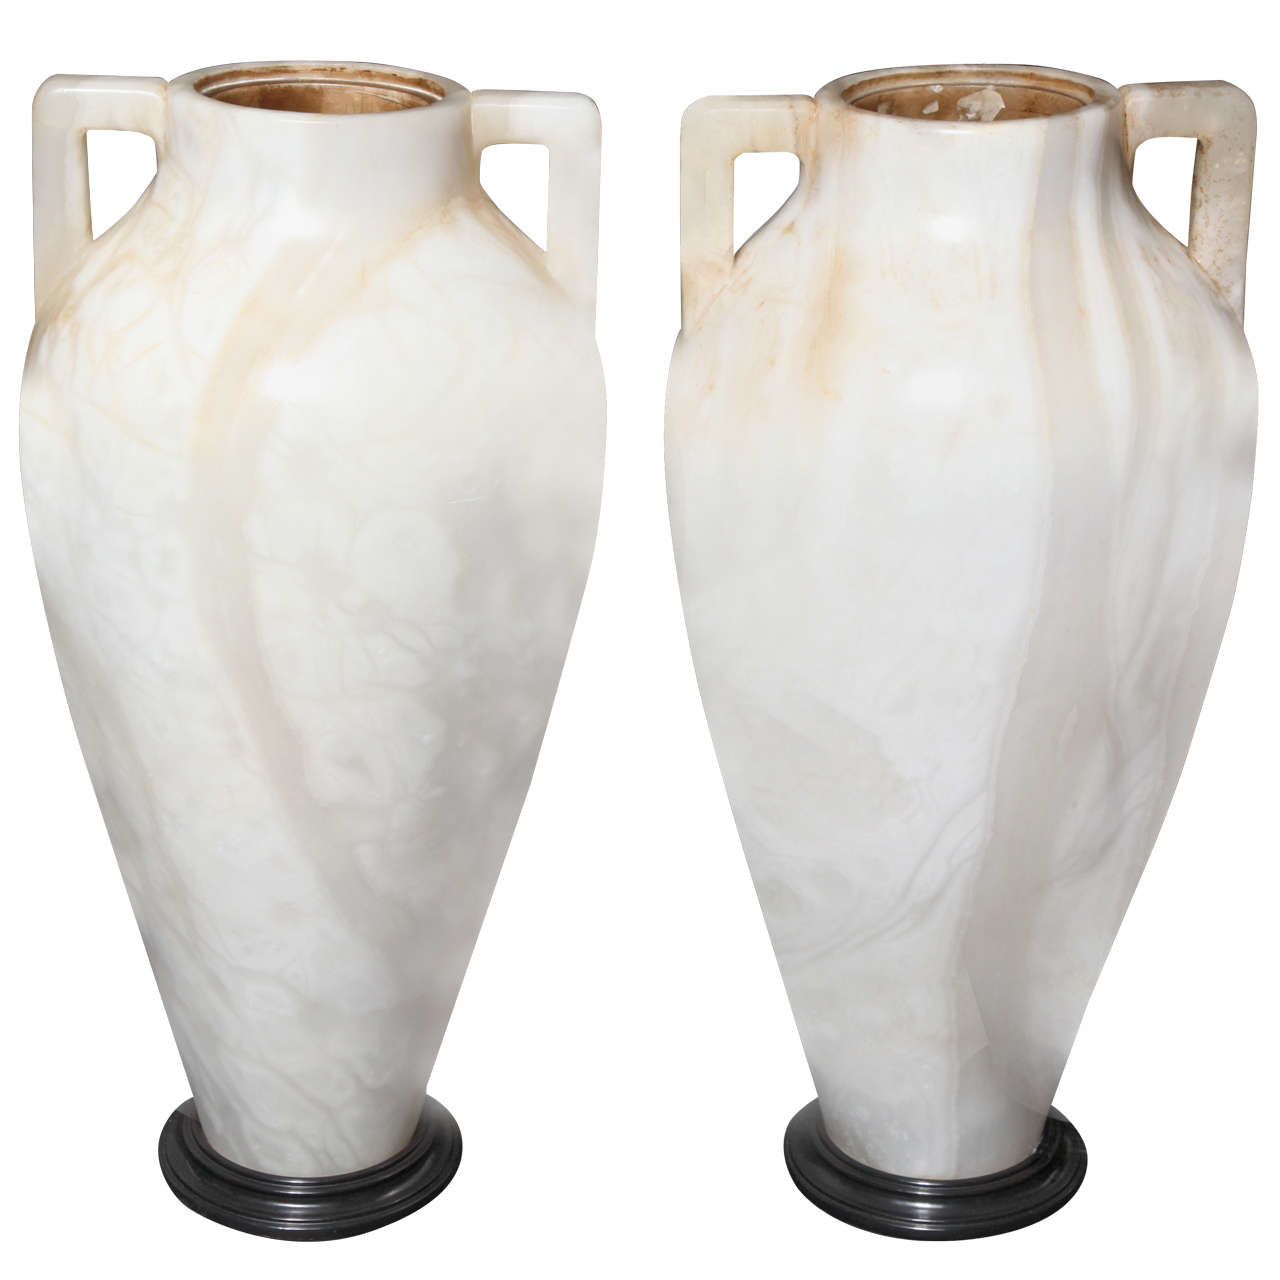 A large pair of french art deco period two handled for Art deco era dates